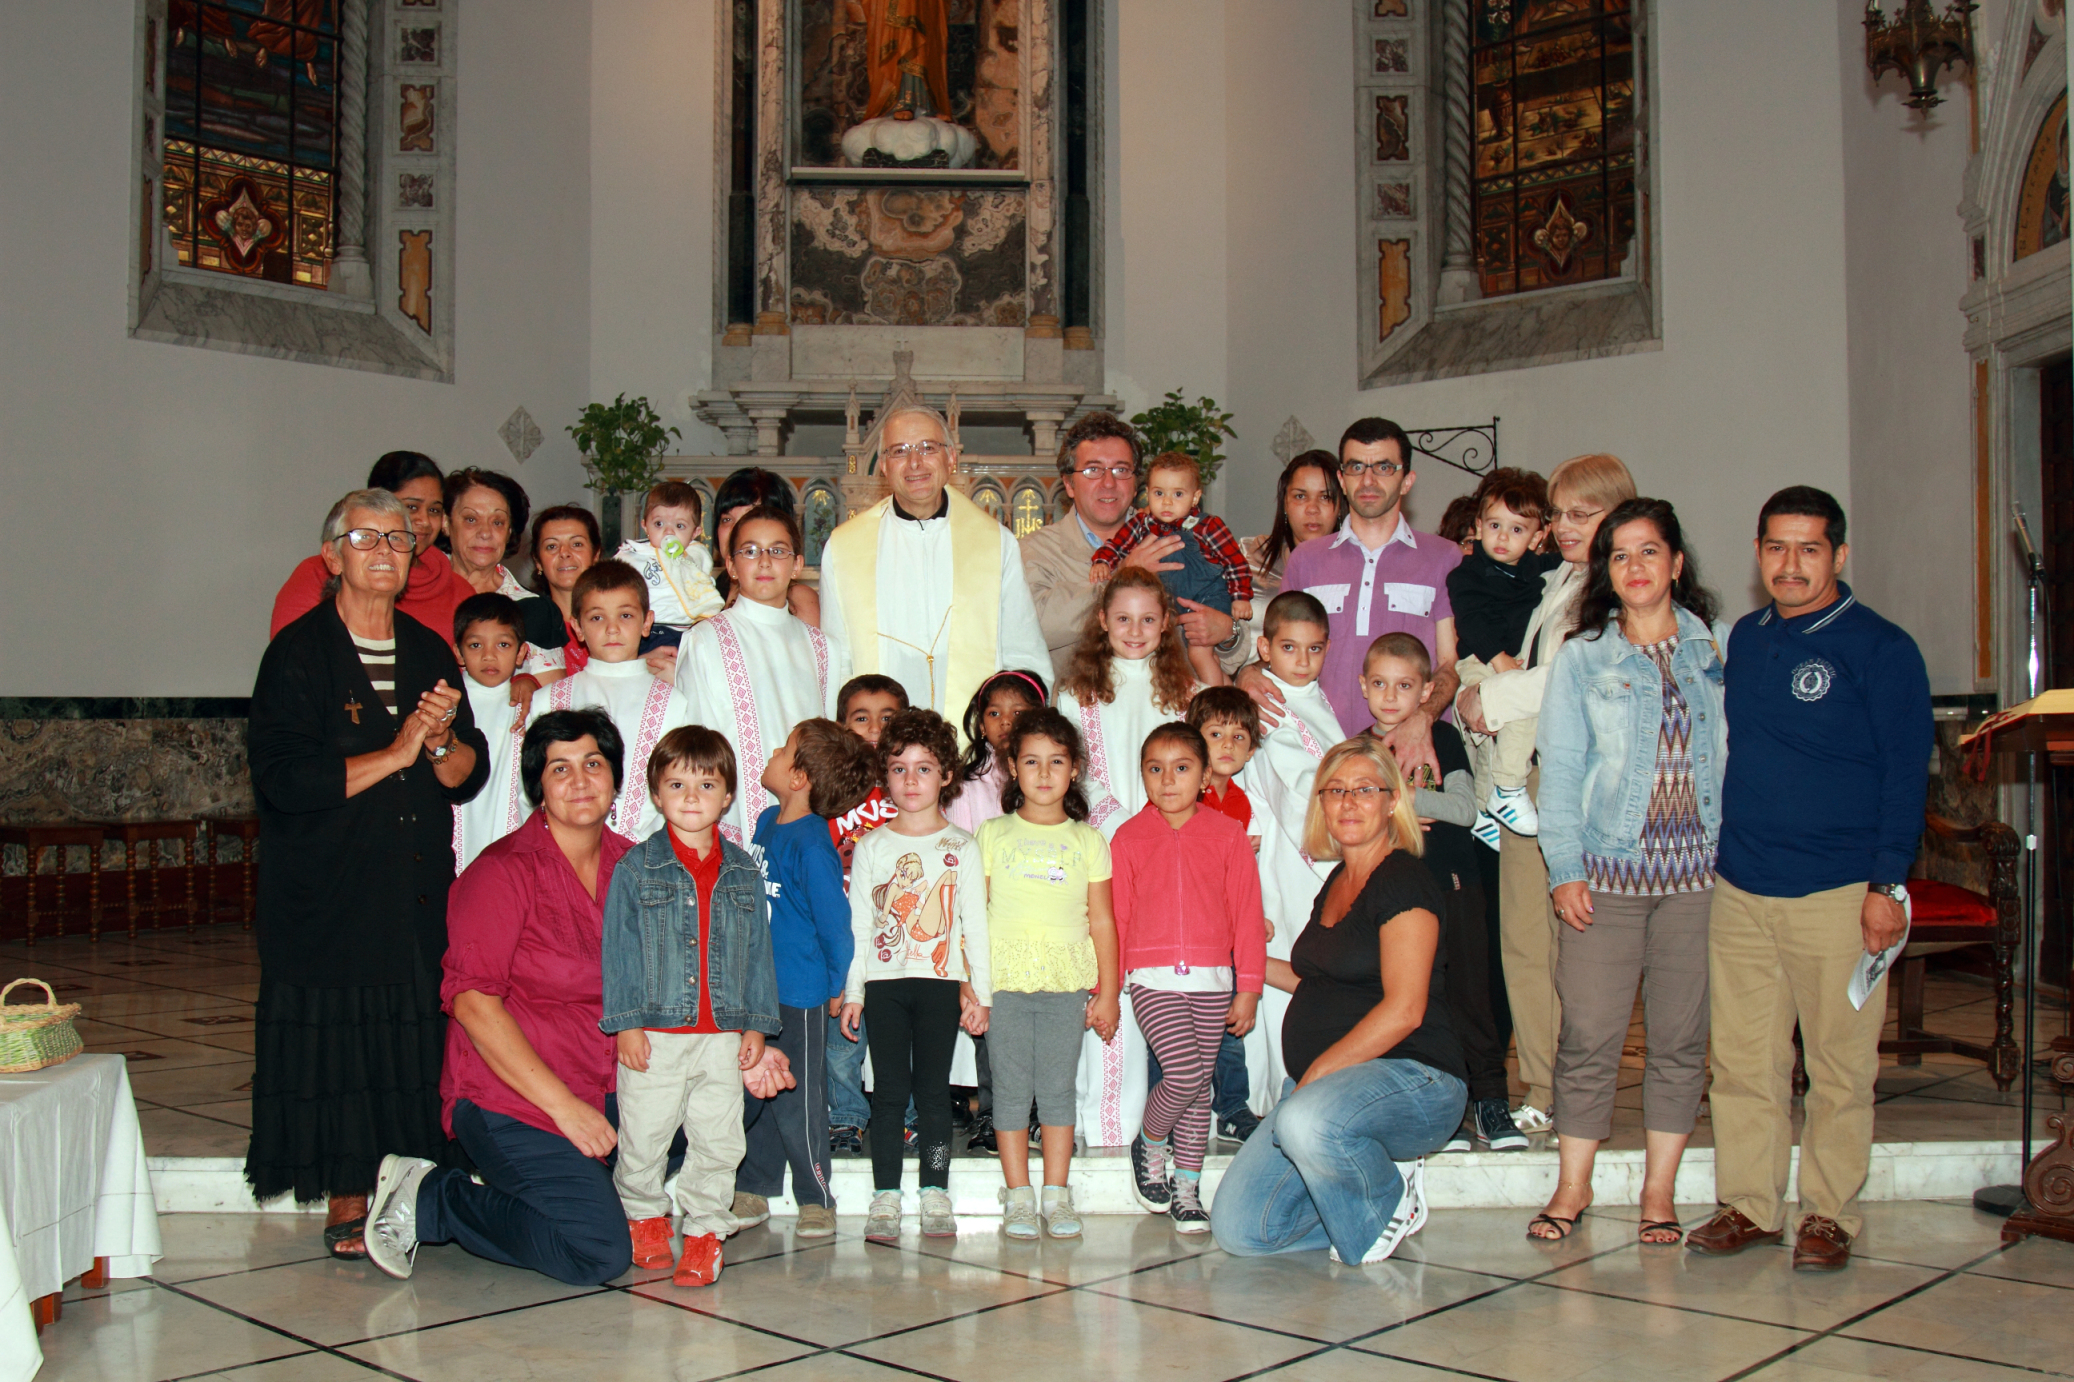 festa_angelo_custode_repetto_2012-10-07--16.34.00.jpg